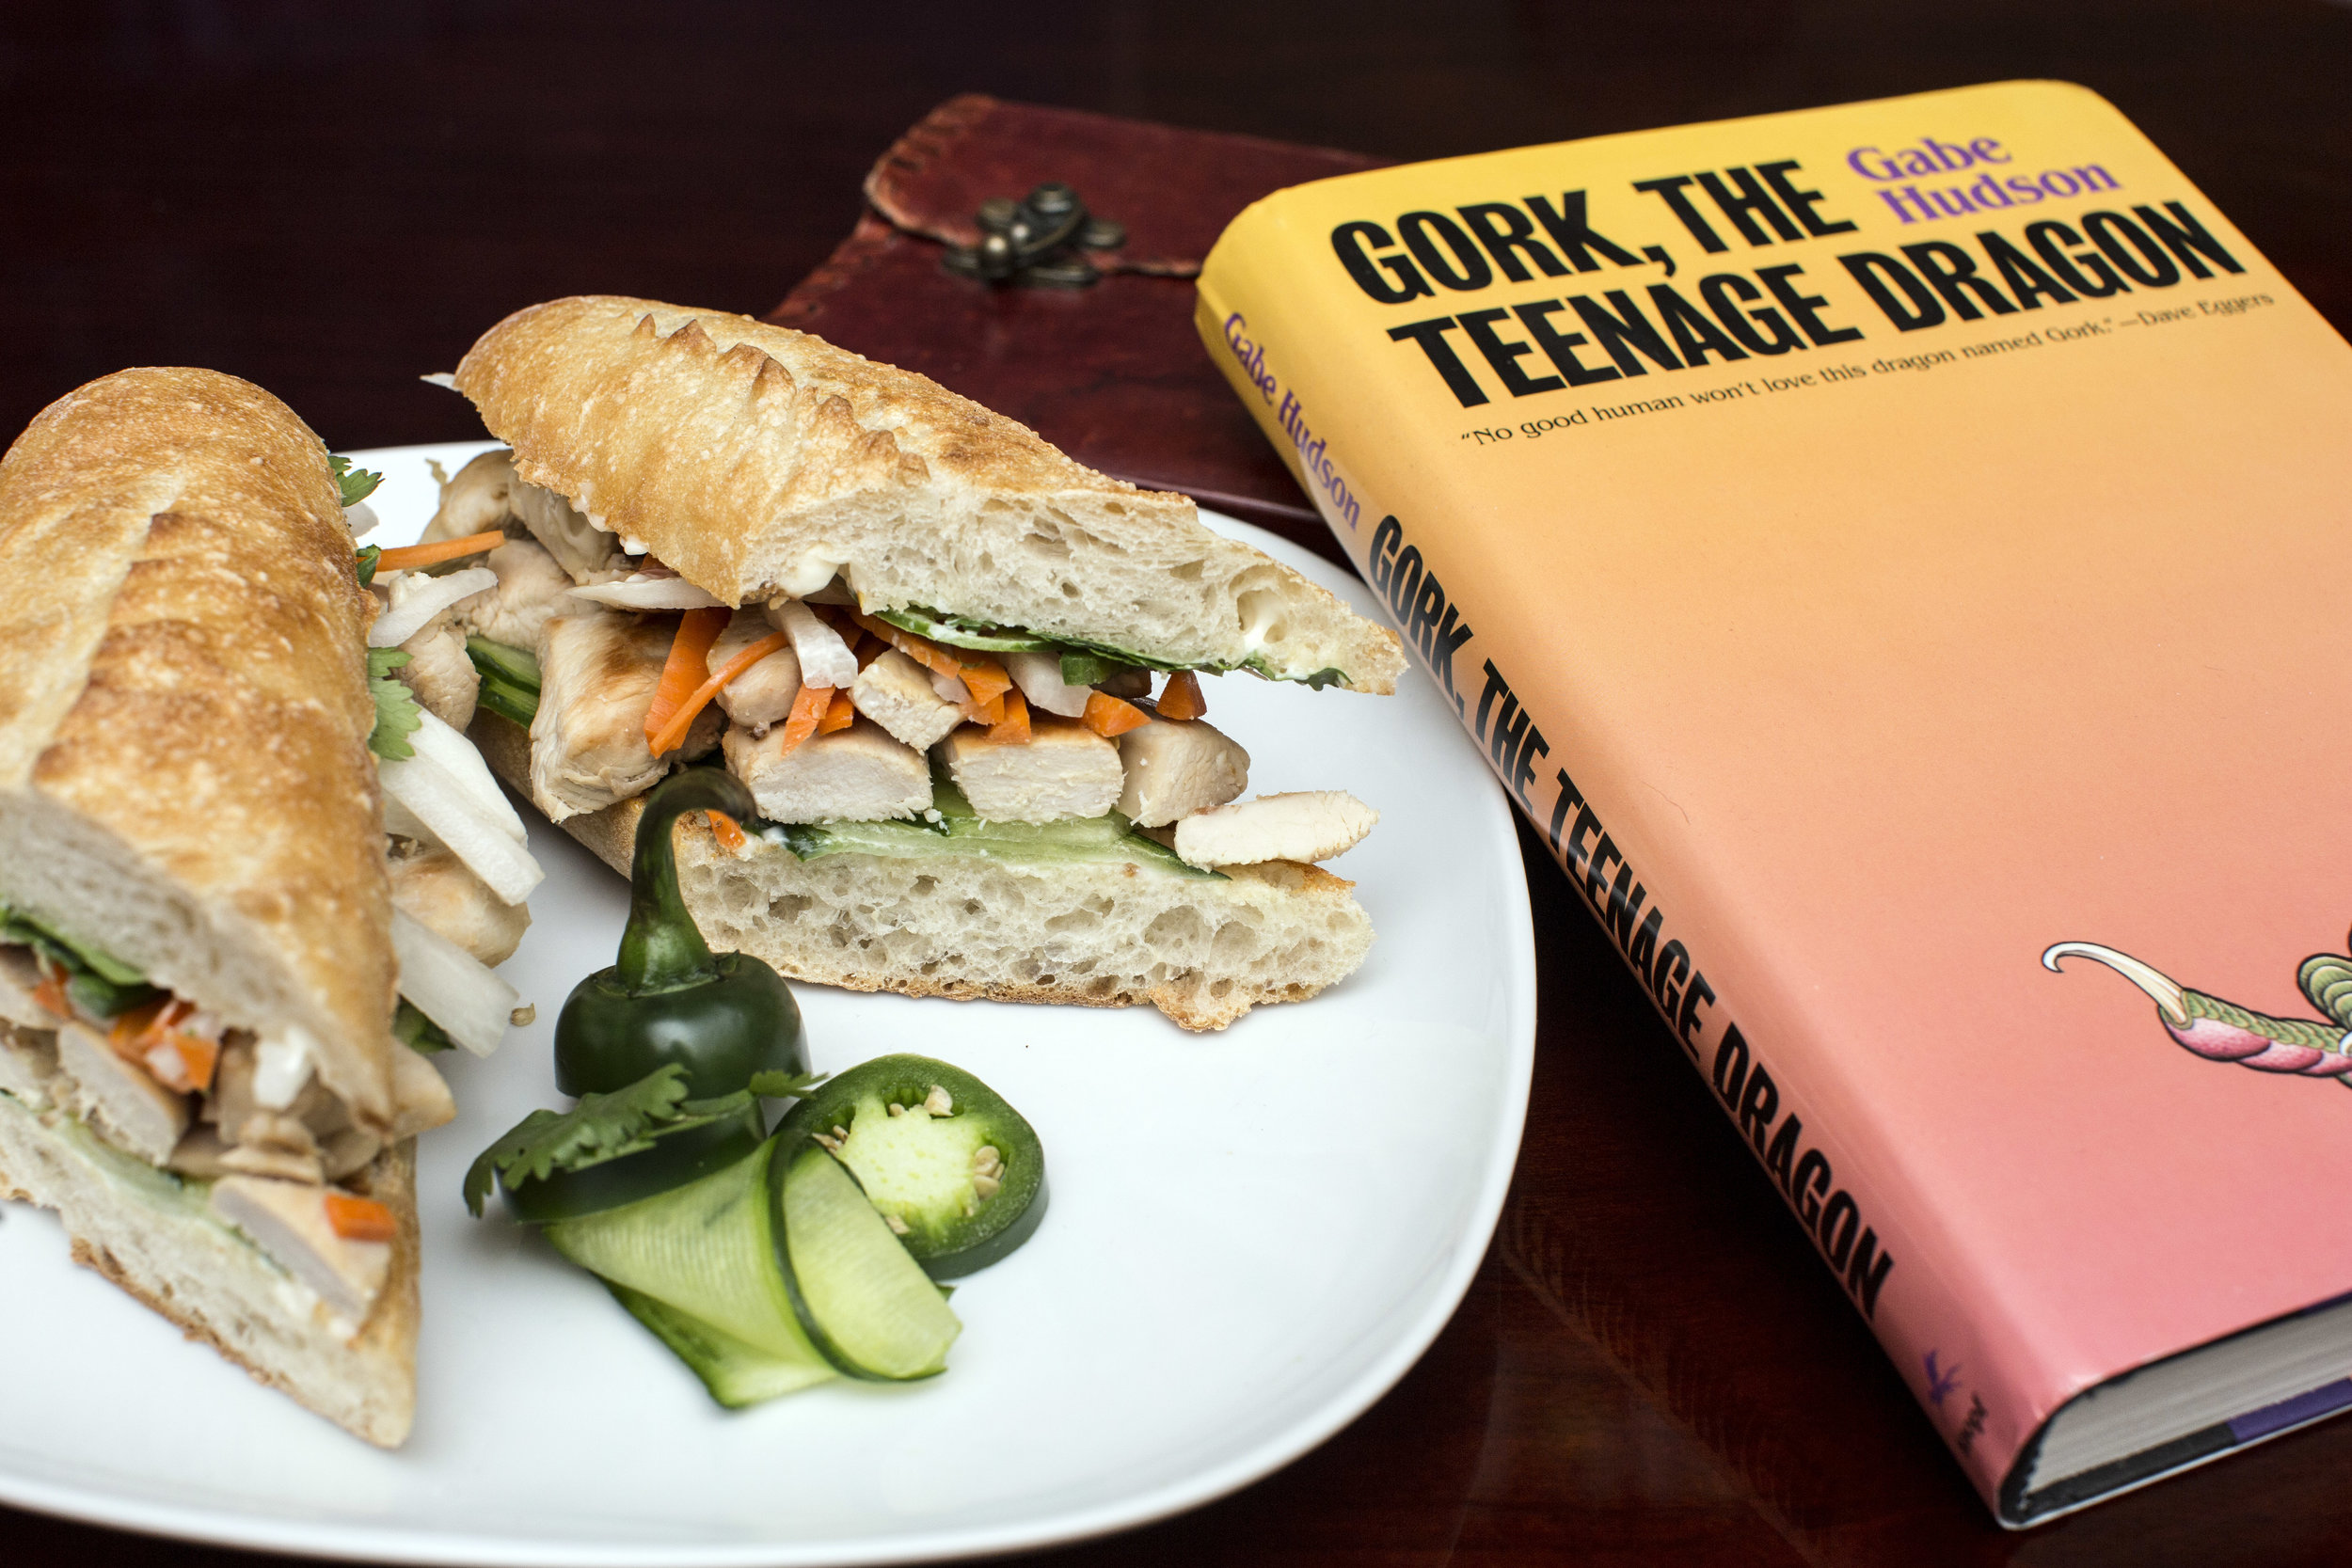 Ingredients: Vietnamese-marinated grilled chicken breast, pickled carrots and daikon radish, cucumber, cilantro, jalapeño, and mayonnaise on a baguette.